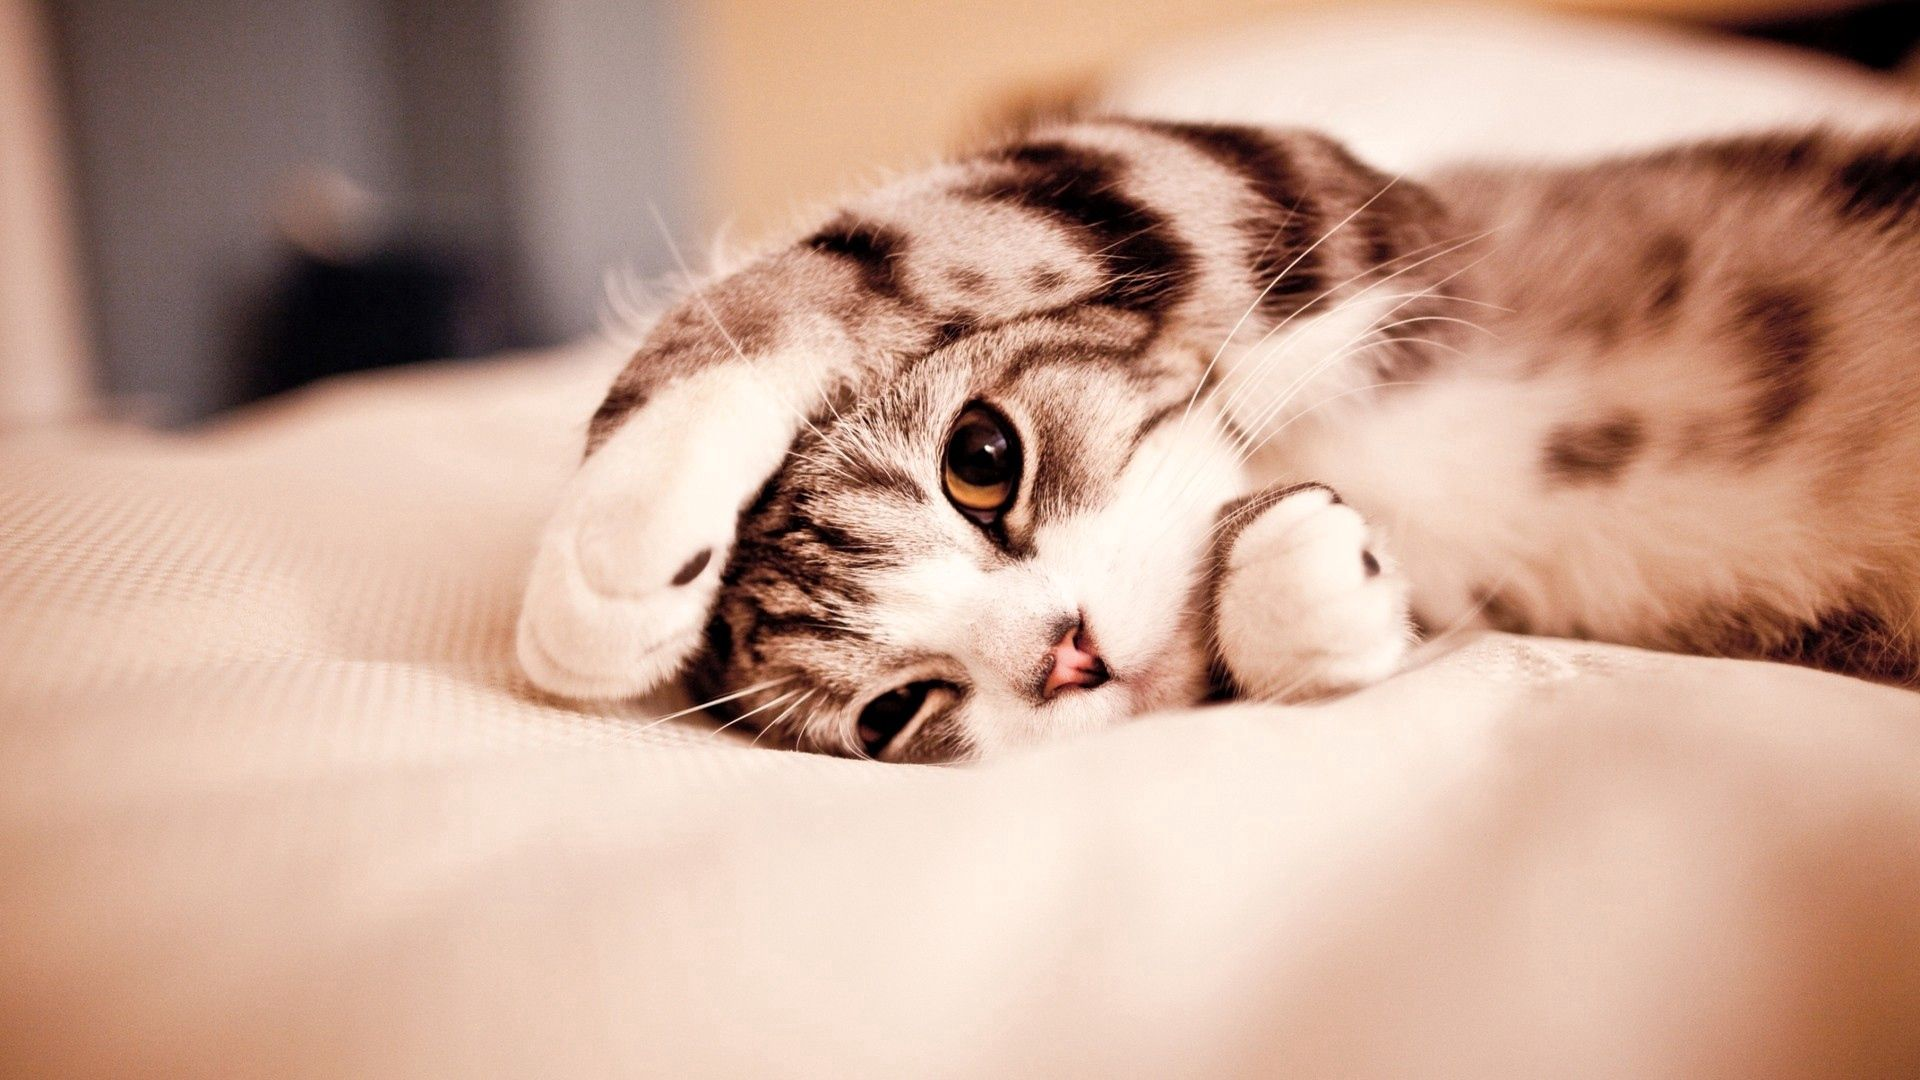 87292 download wallpaper Animals, Cat, Paw, To Lie Down, Lie, Playful screensavers and pictures for free